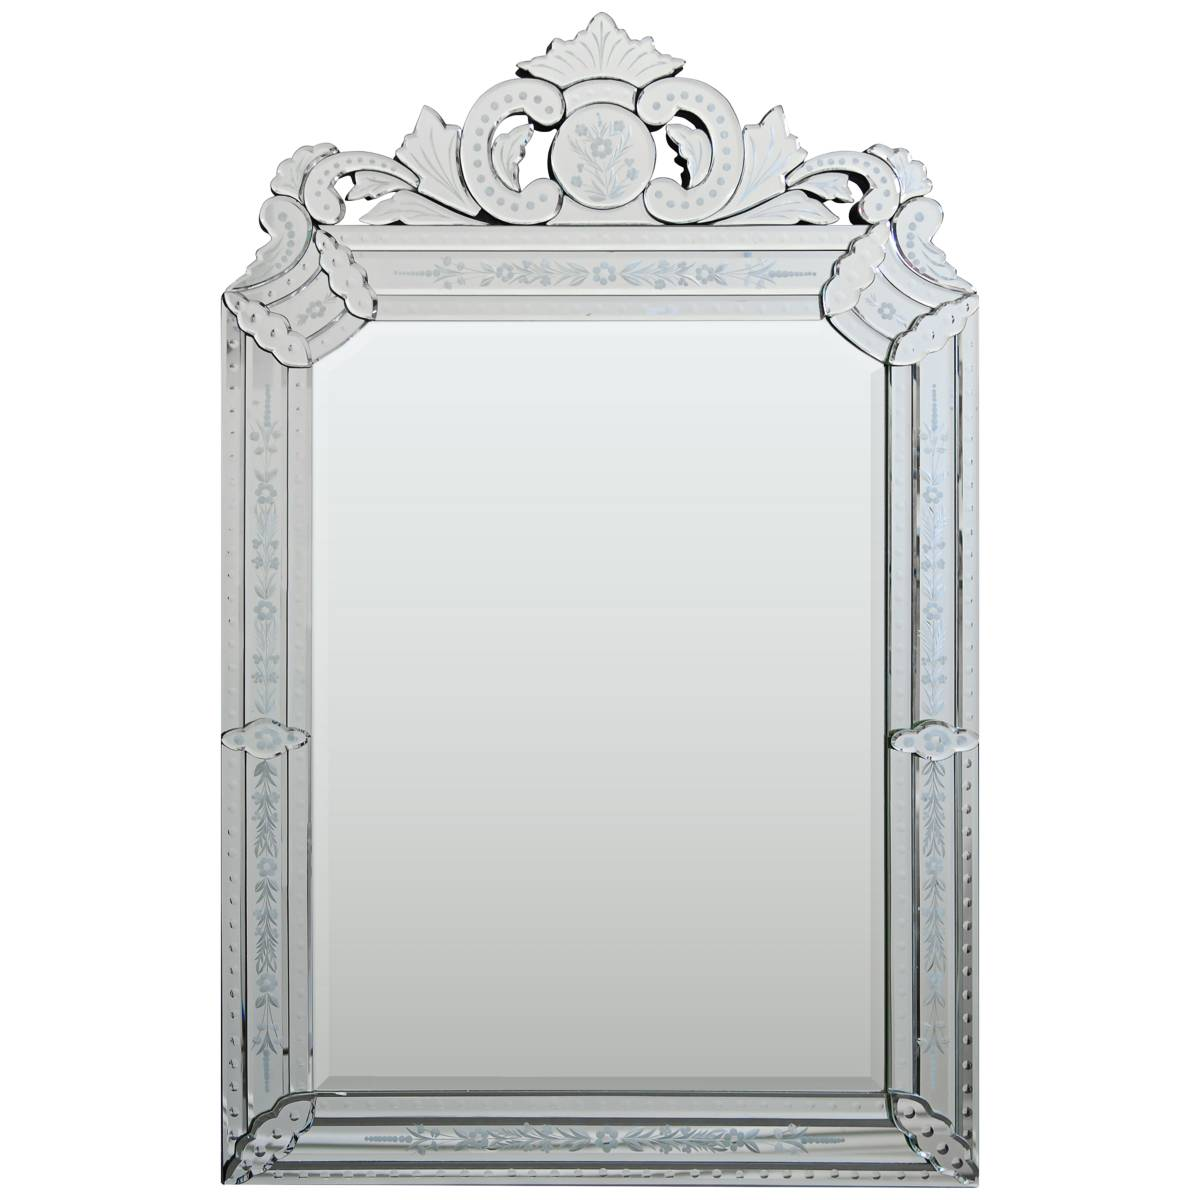 Large Wall Mirrors 37 Quot To 48 Quot Large Mirror Styles For